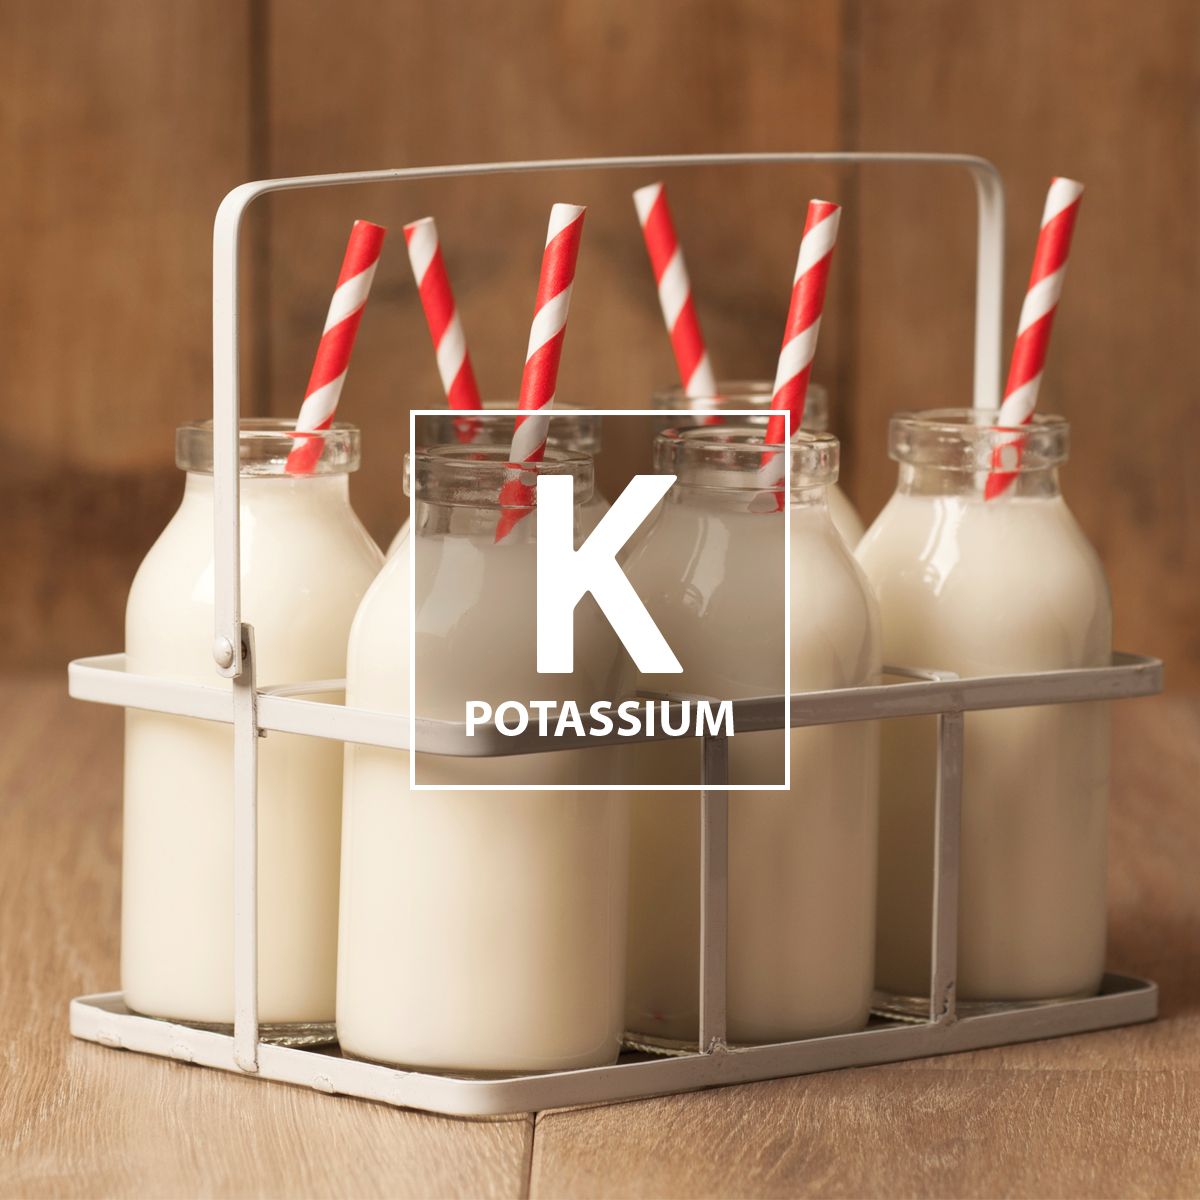 Potassium is a nutrient in milk